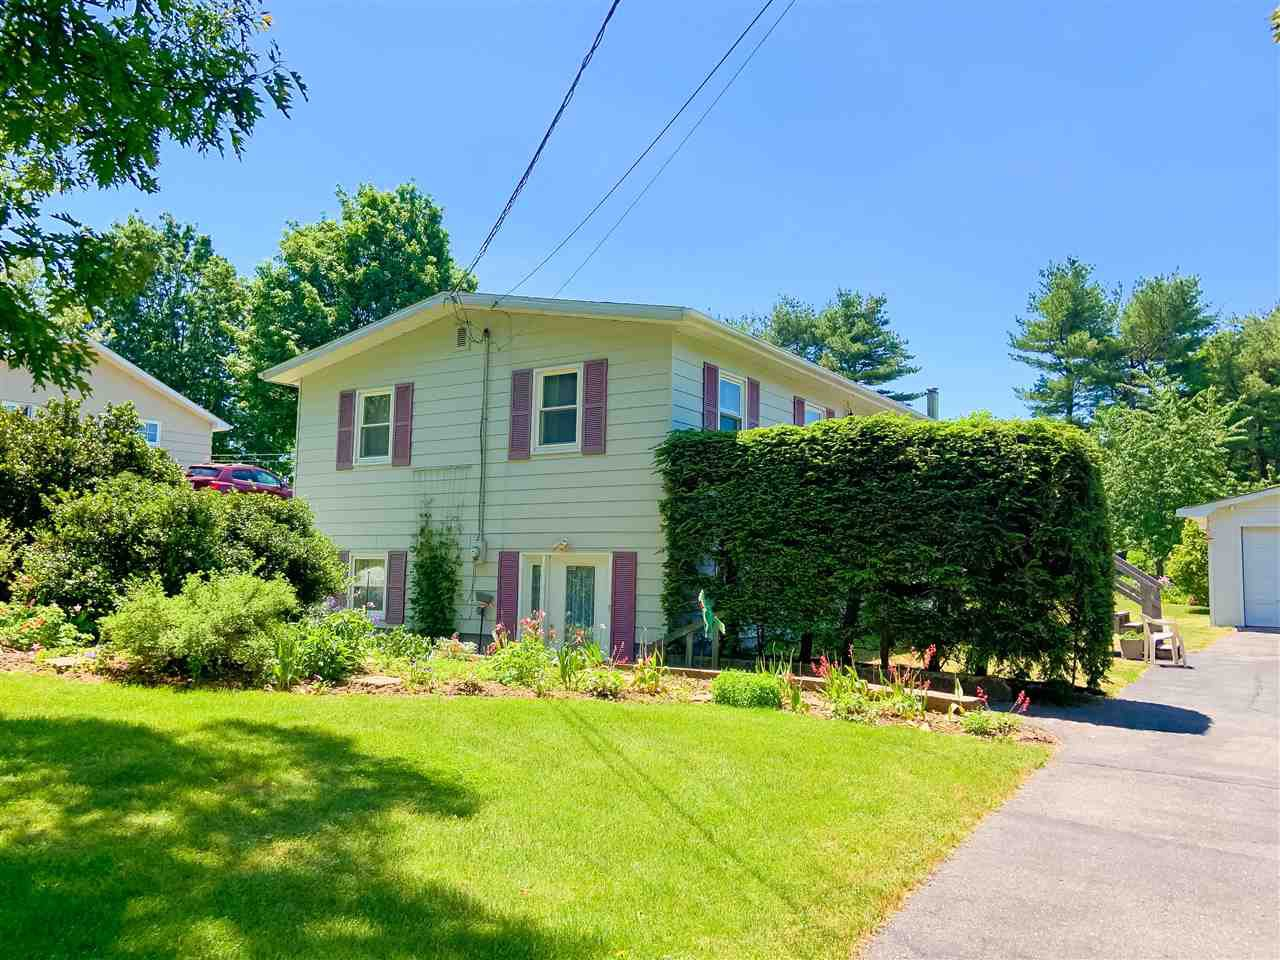 Main Photo: 1001 Thompson Road in Waterville: 404-Kings County Residential for sale (Annapolis Valley)  : MLS®# 202010833